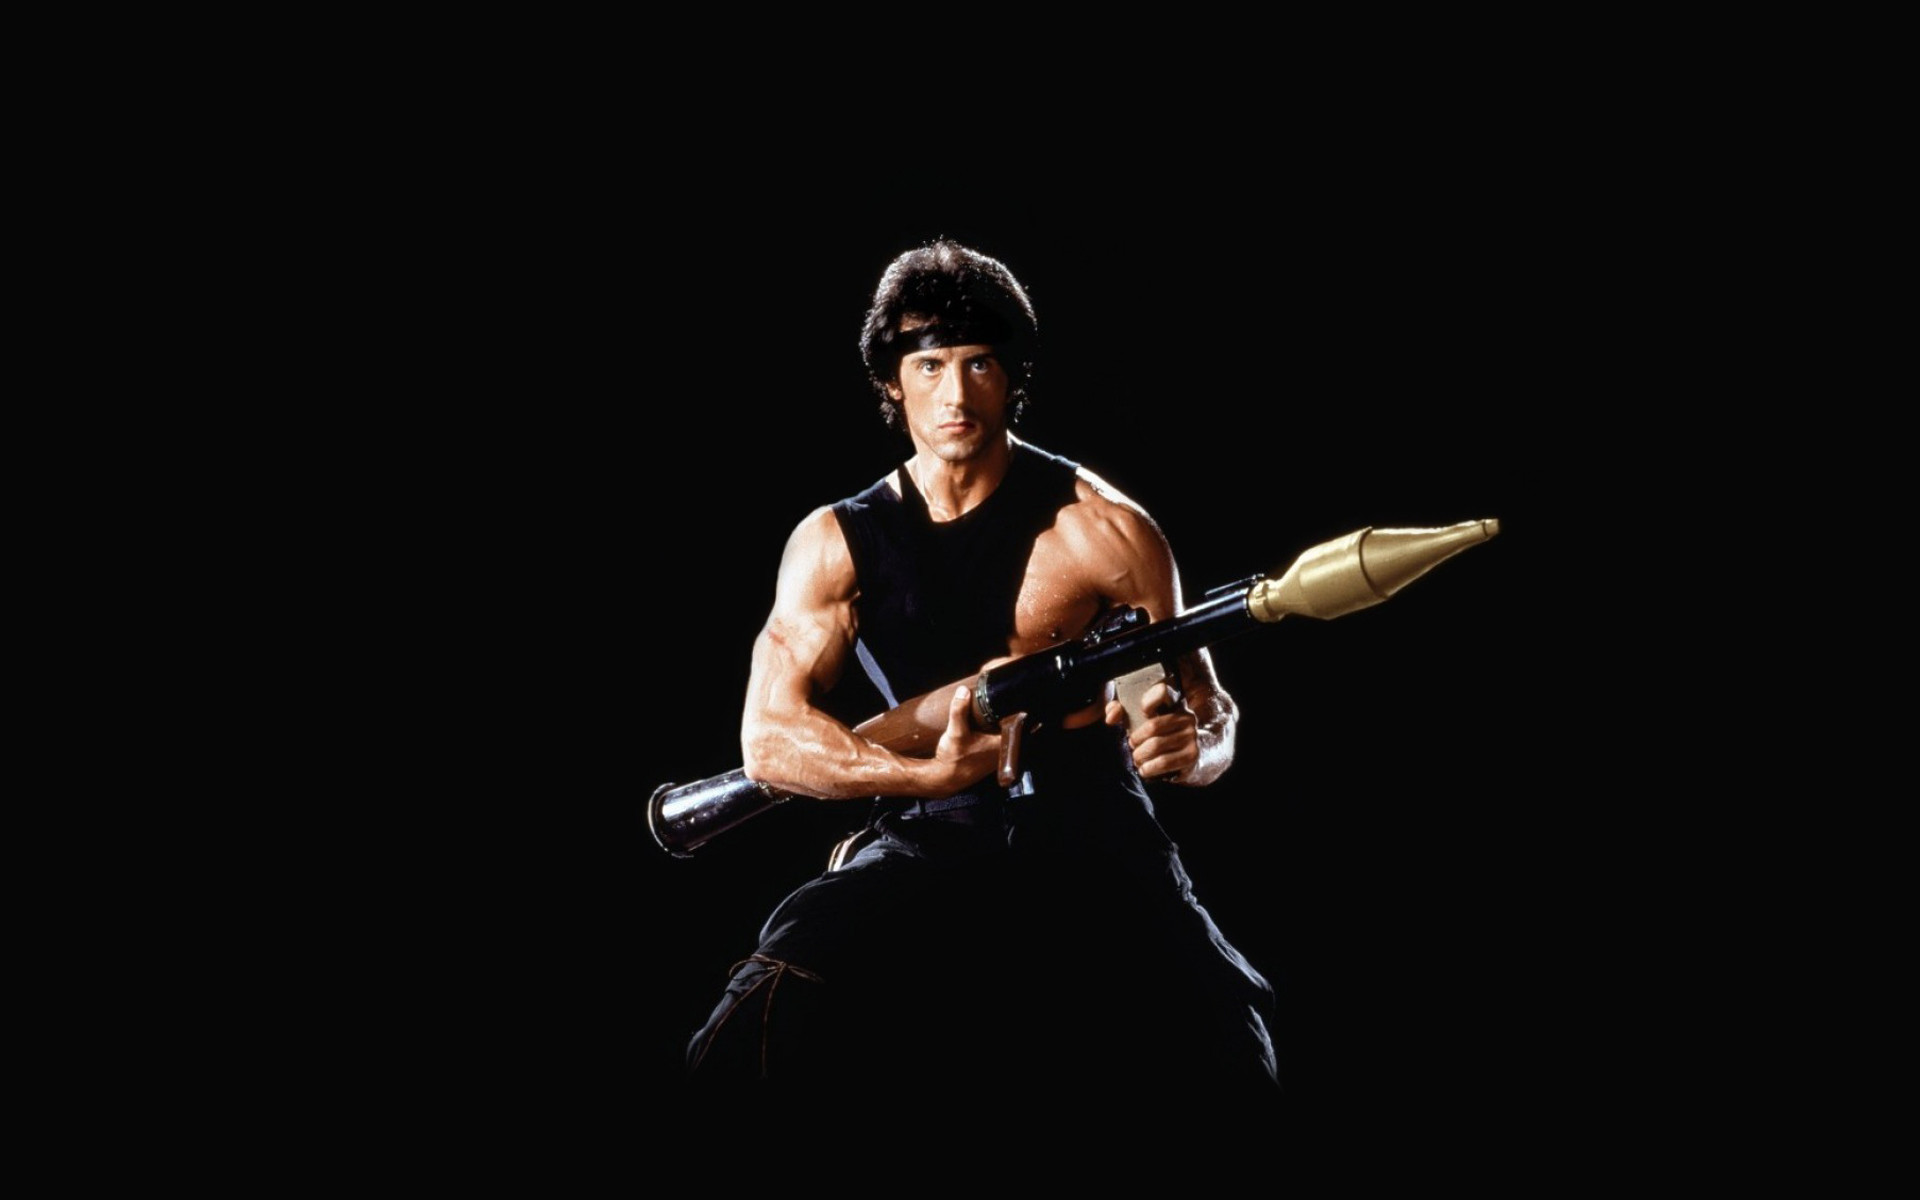 Picture Rambo Sylvester Stallone Grenade launcher Movies